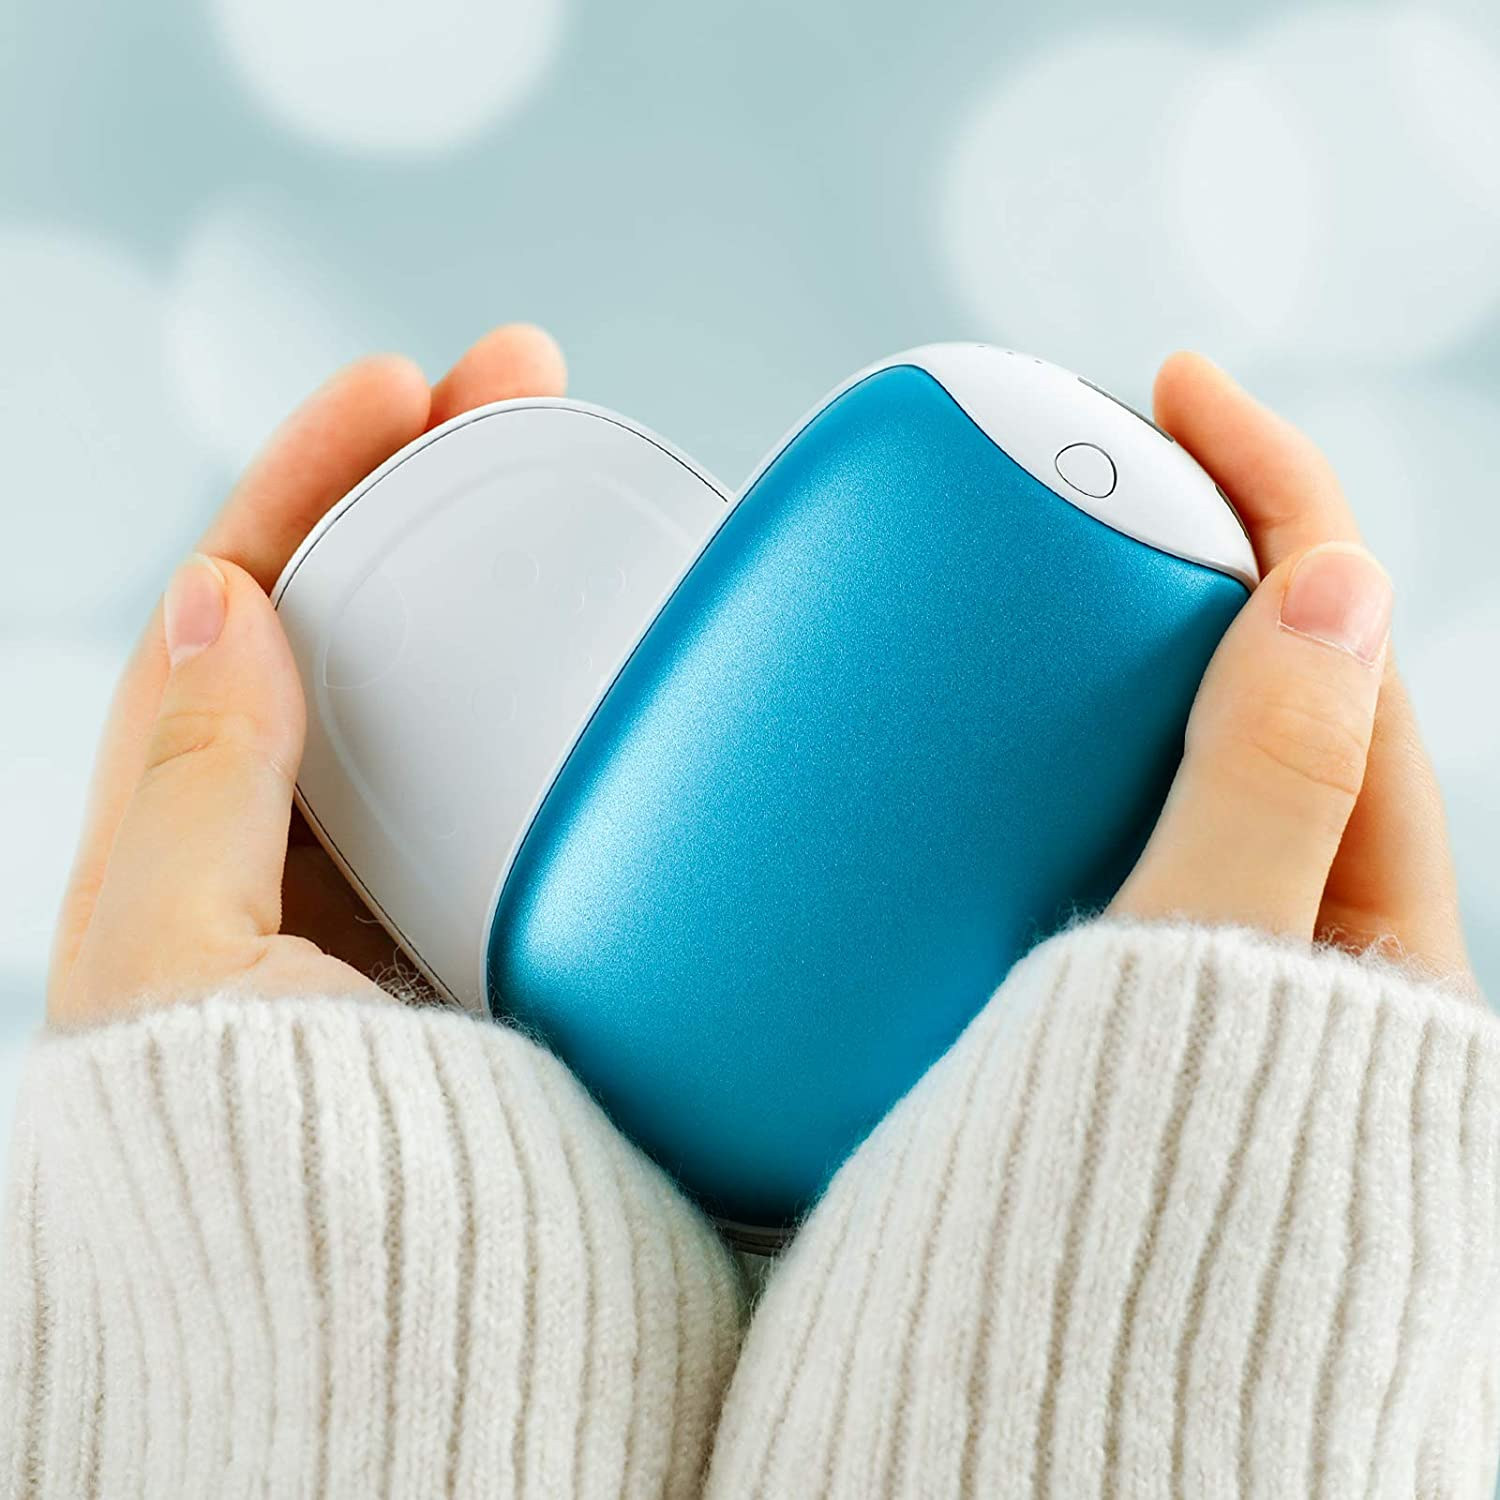 All items in the store U-miss Rechargeable Hand Warmers 2020 2 Re in1 Upgrade OFFicial site Magnetic